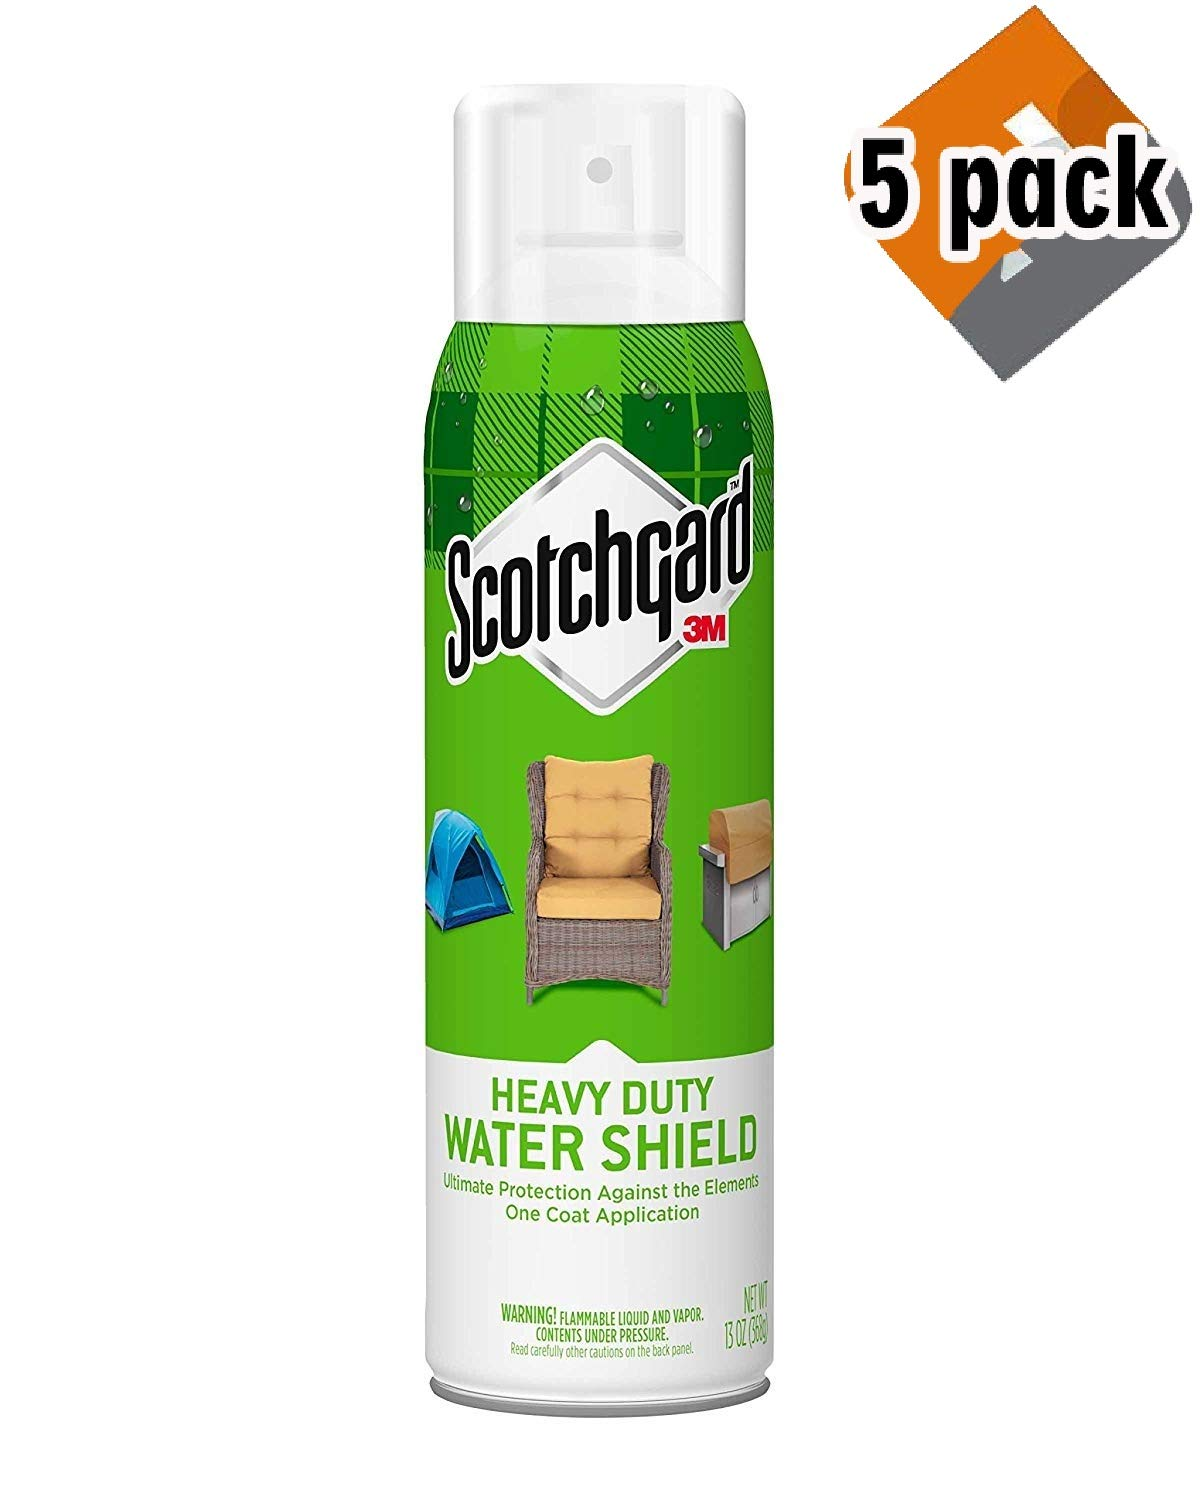 Scotchgard Heavy Duty Water Shield Protector, 1 Can, 13-Ounces (5 Pack)